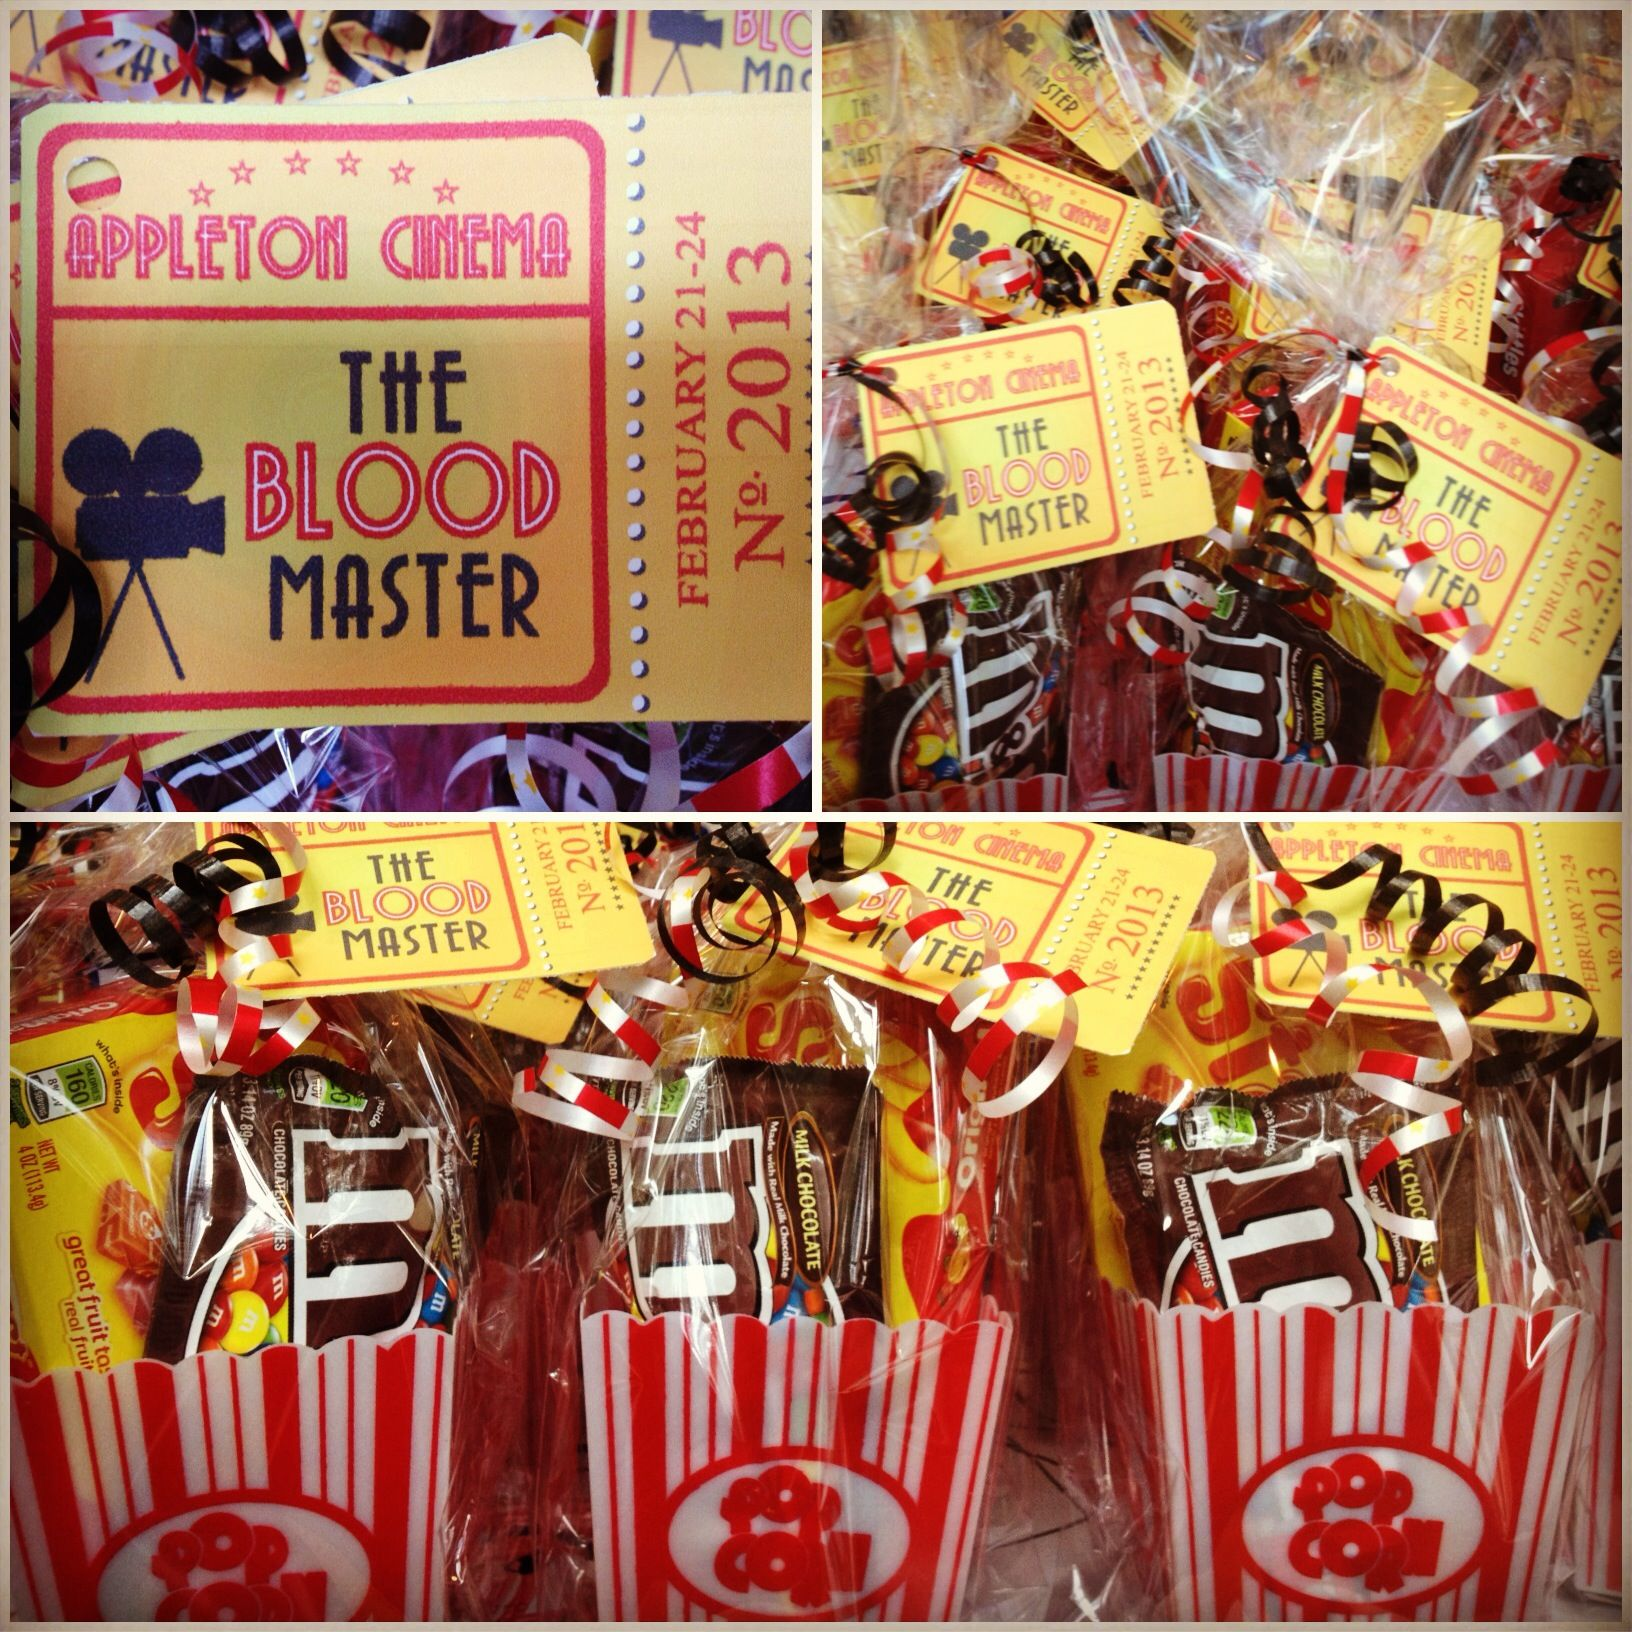 My Movie Themed Party Favors I Made For A Cast Party Movie Themed Party Movie Party Favors Hollywood Party Theme